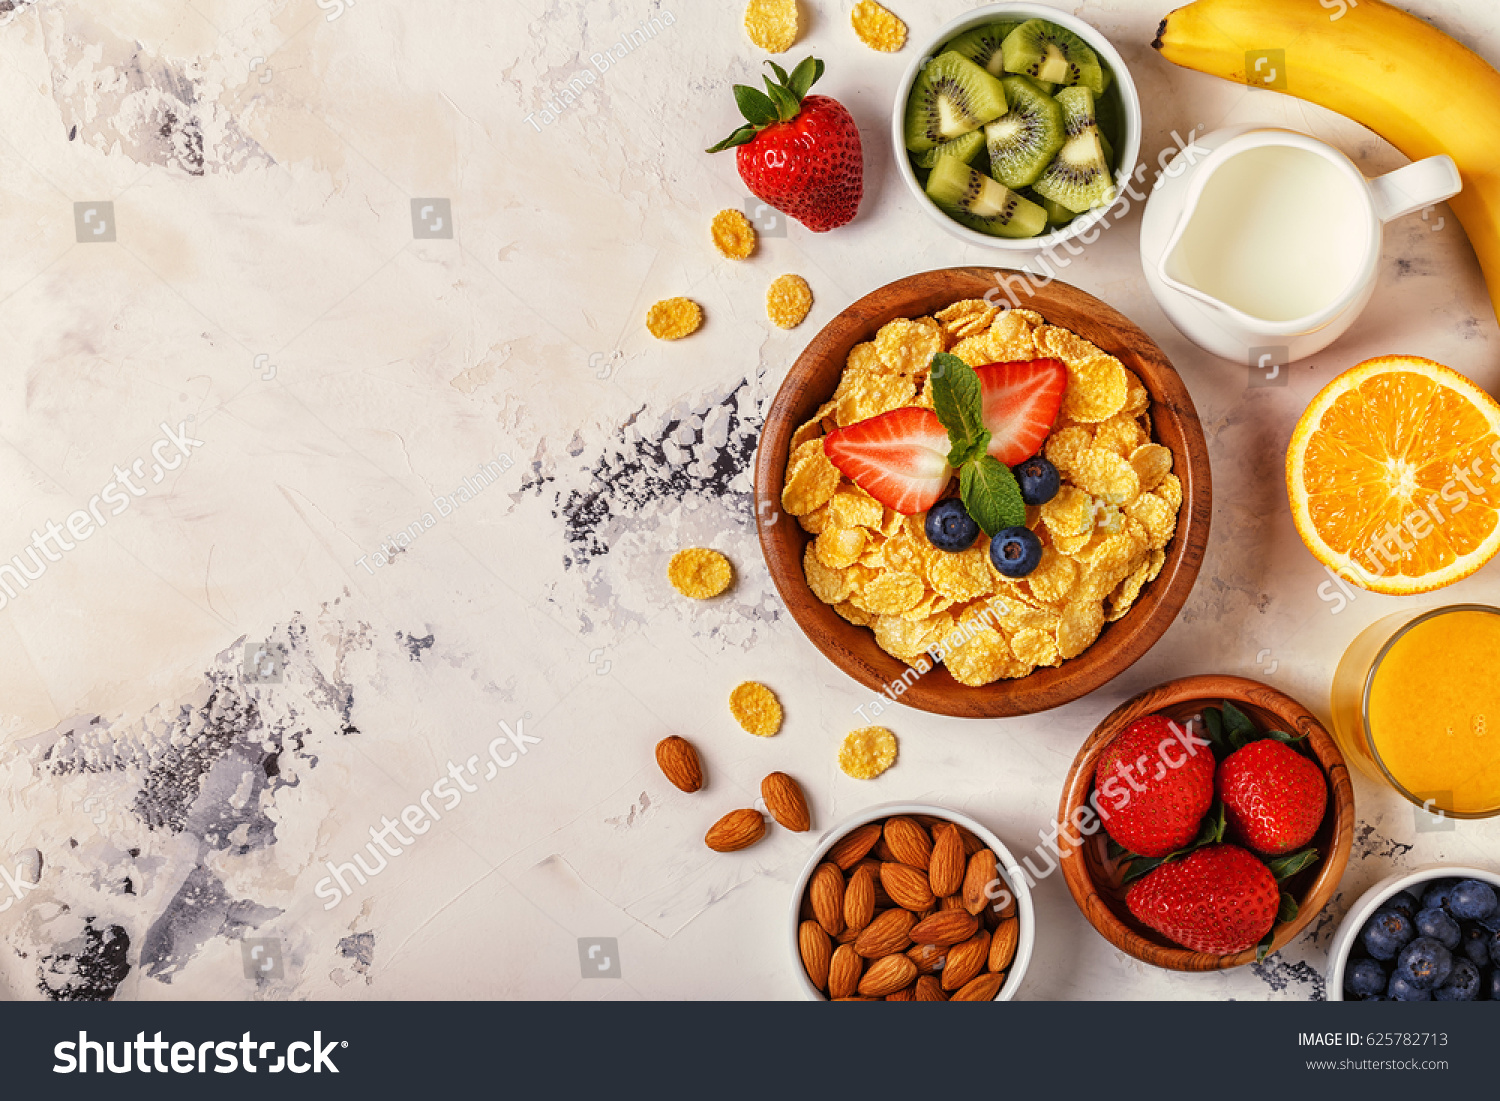 Healthy breakfast - bowl of corn flakes, berries and fruit, nuts, orange juice, milk, top view. #625782713